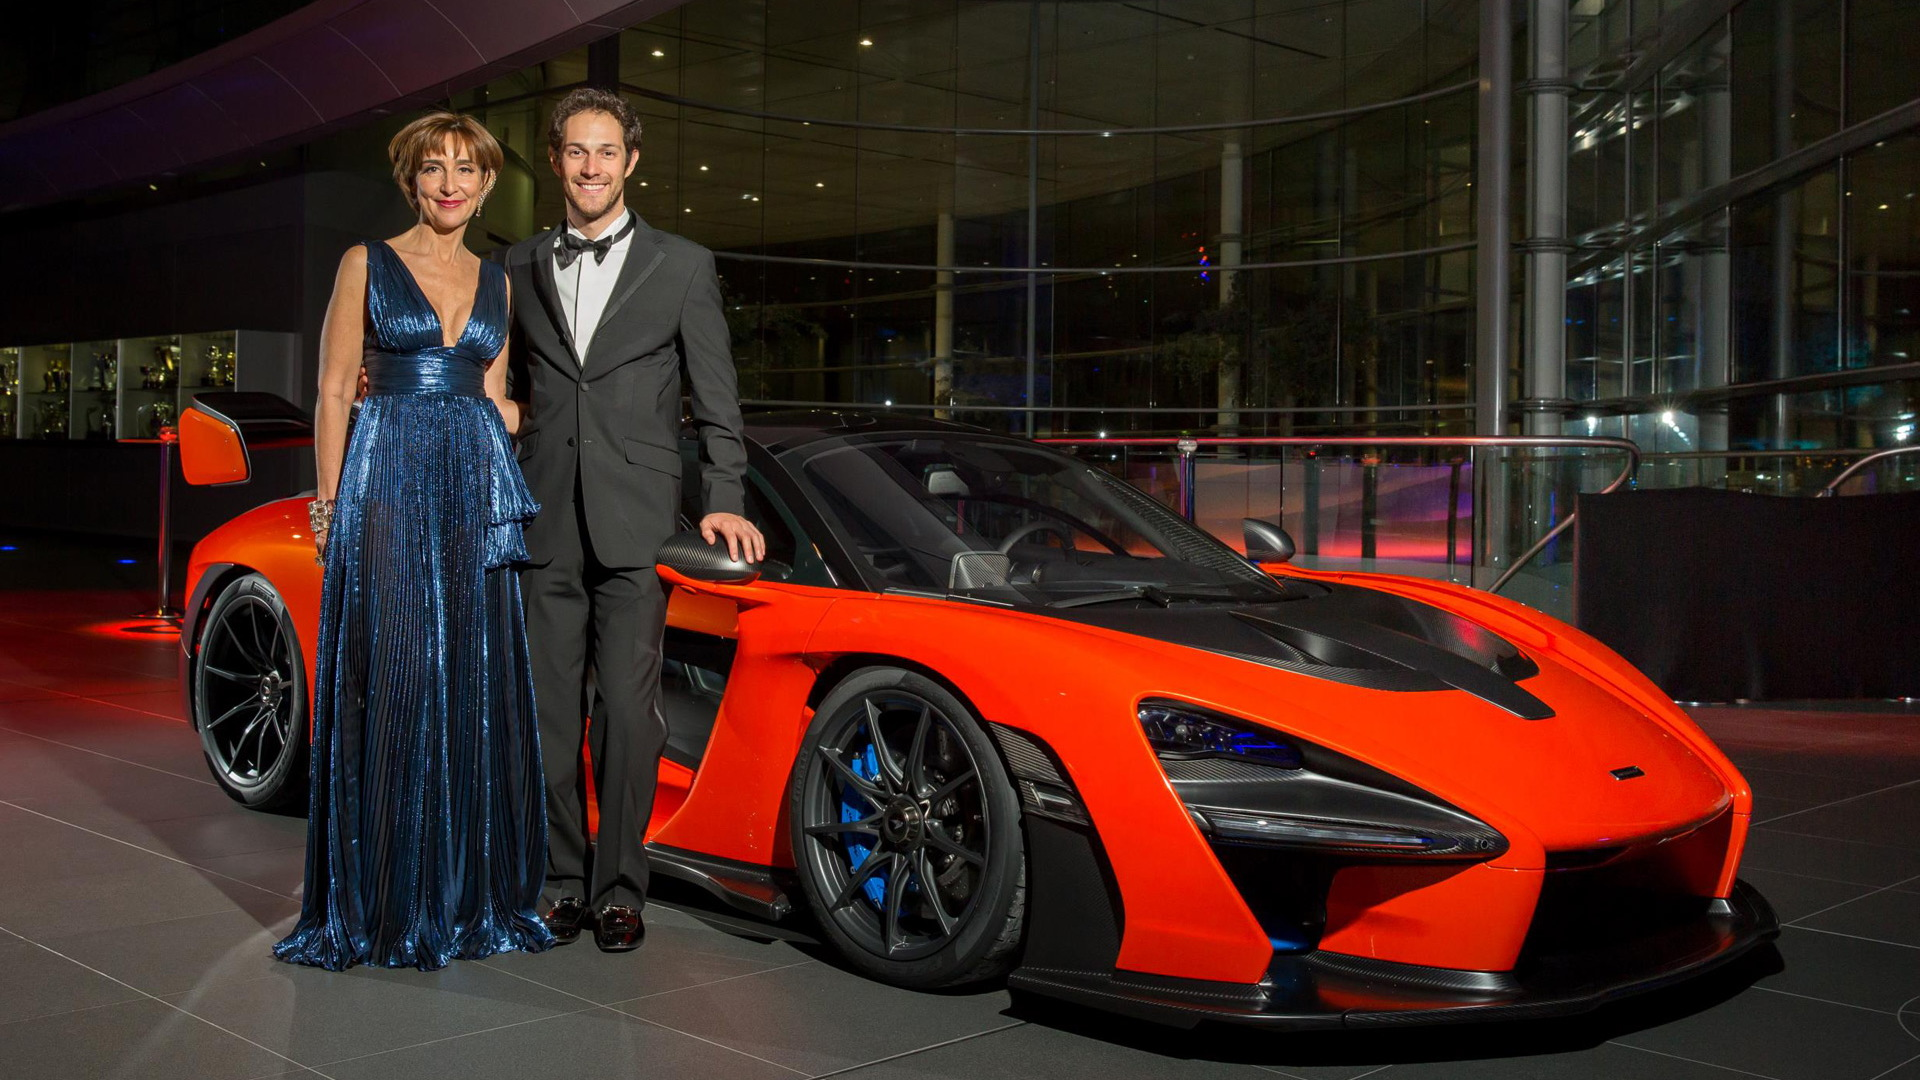 Viviane Senna da Silva Lalli and Bruno Senna with the McLaren Senna